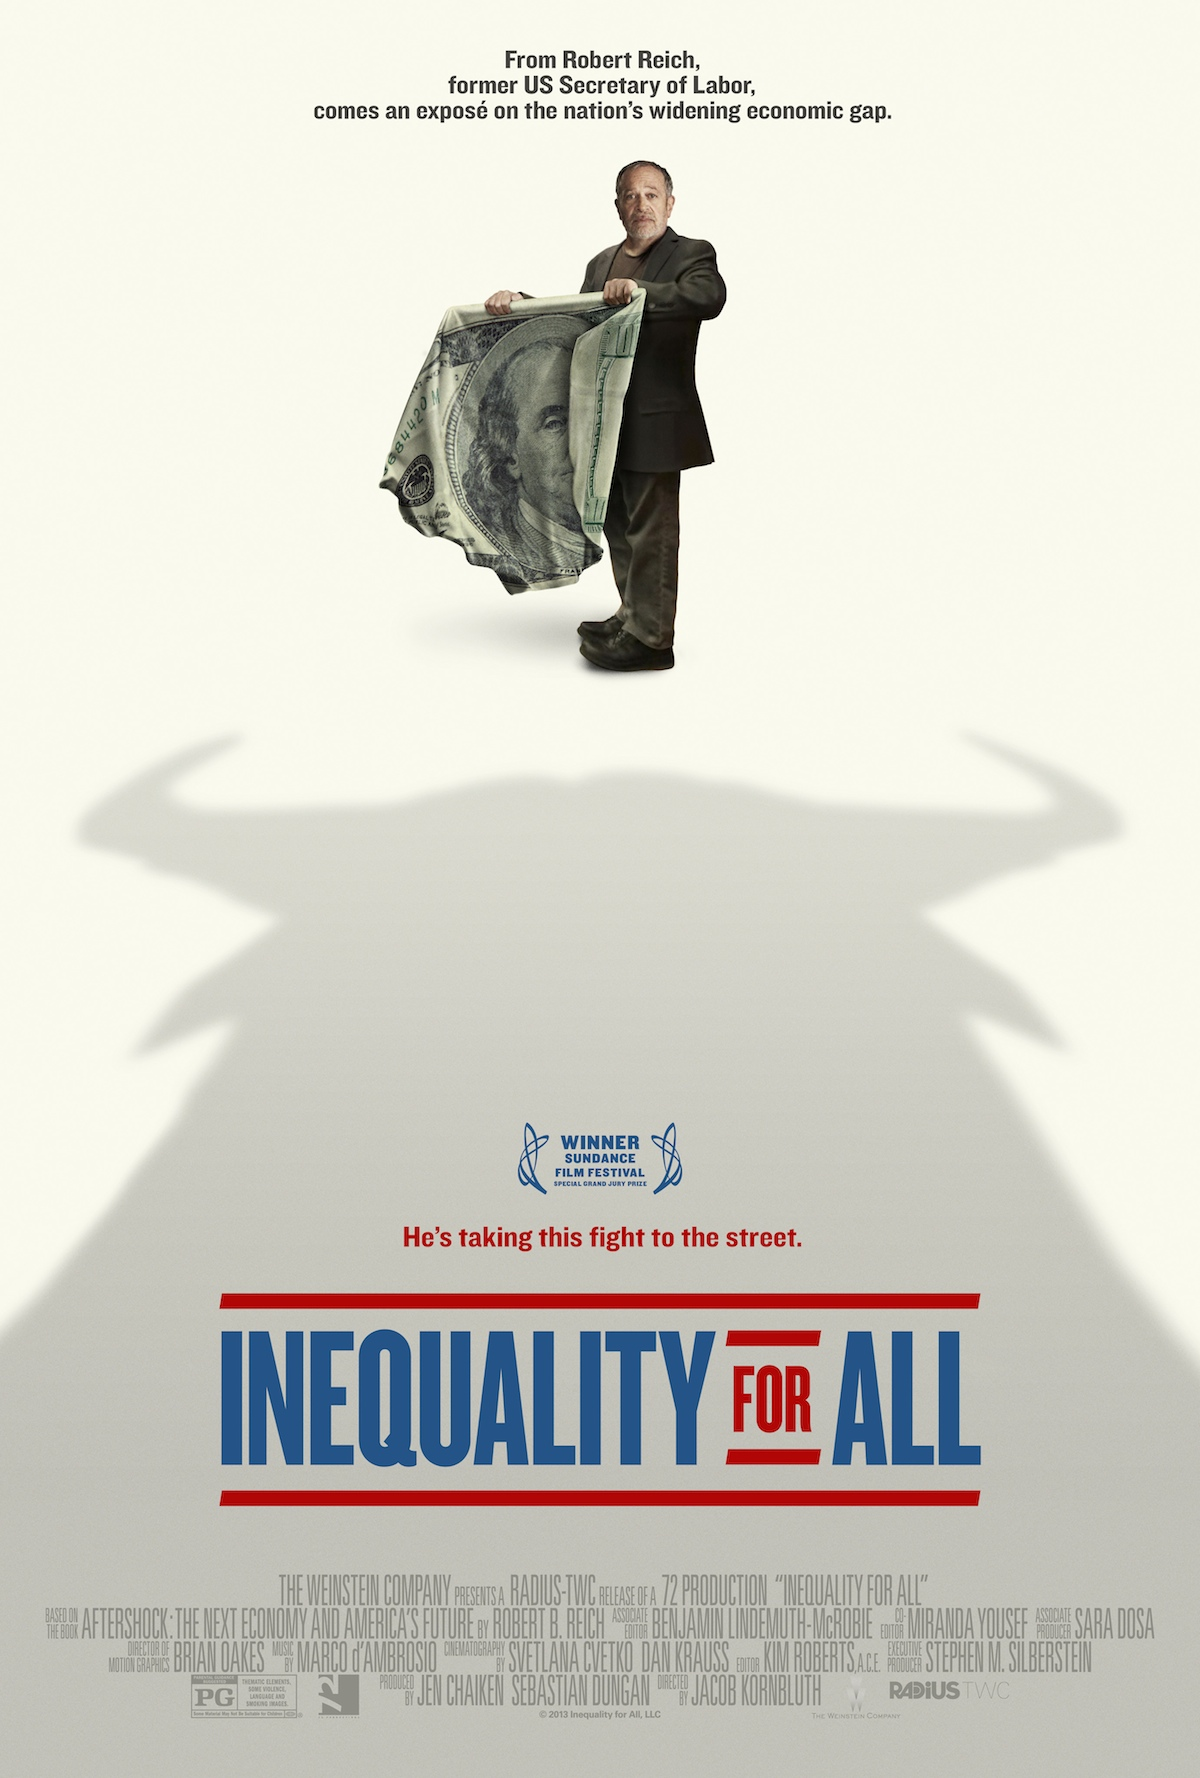 http://4.bp.blogspot.com/-wImUFSvz0KU/UkJTsgH3XdI/AAAAAAAAMSY/Mhqoz6ZN6NM/s1800/inequality-for-all-movie-poster.jpg